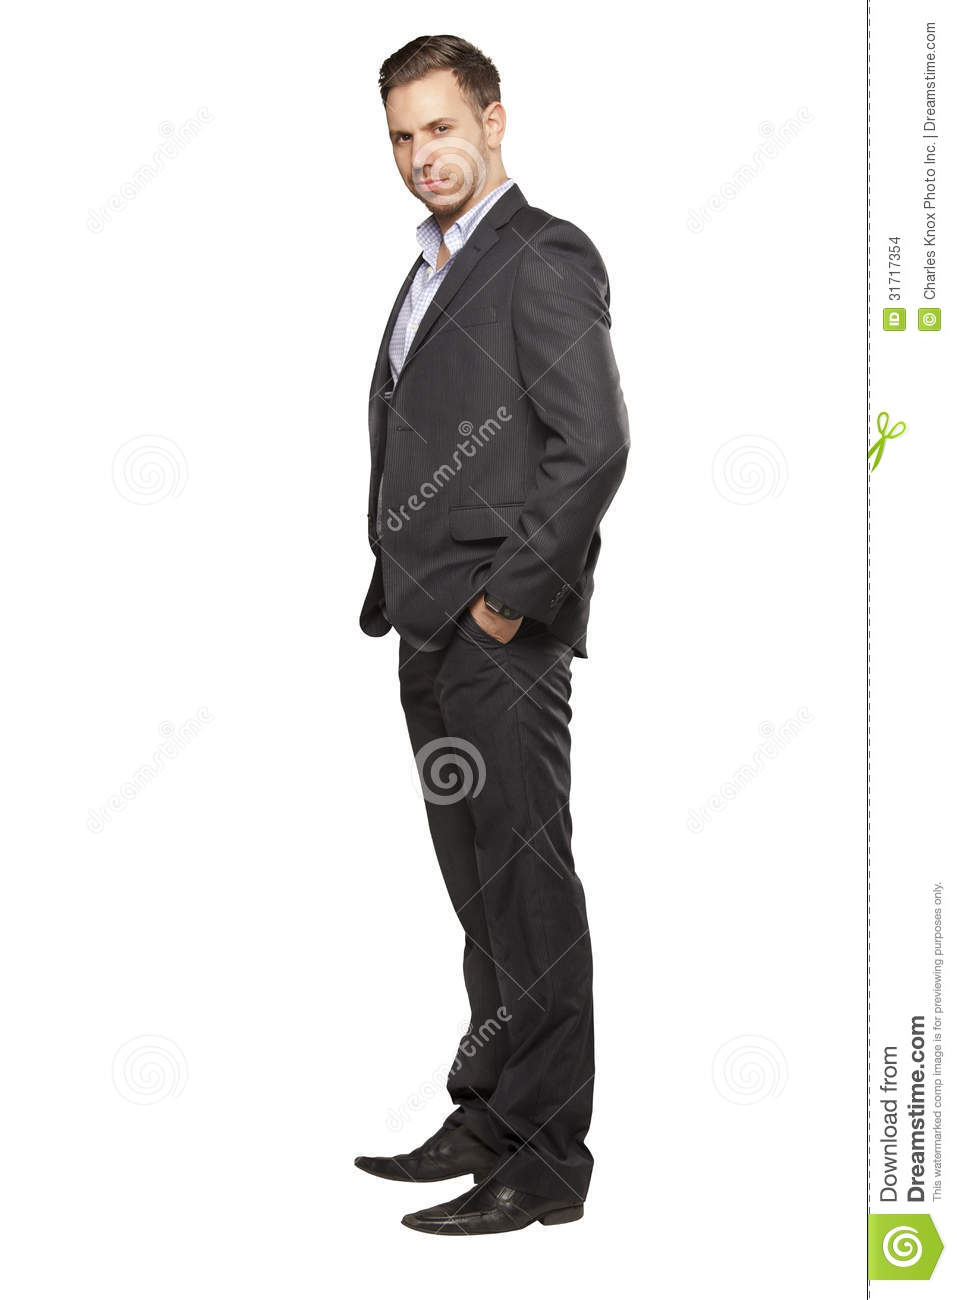 Young Man In Black Suit Stock Images - Image: 31717354